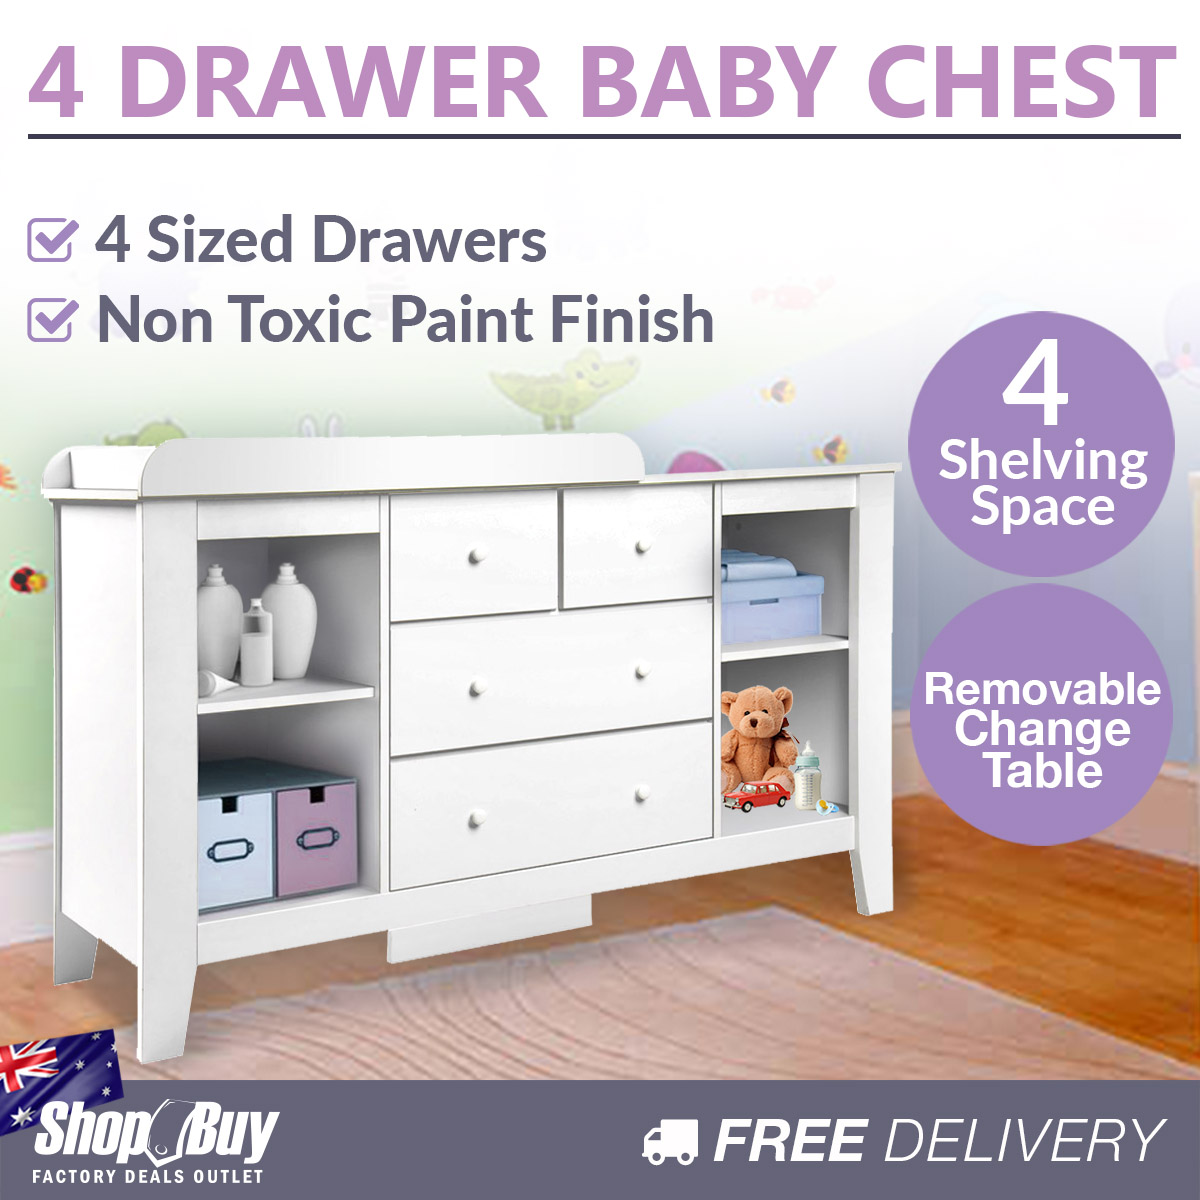 e o i t r nursery fresh l the pin baby completed exchange drawers m drawer s